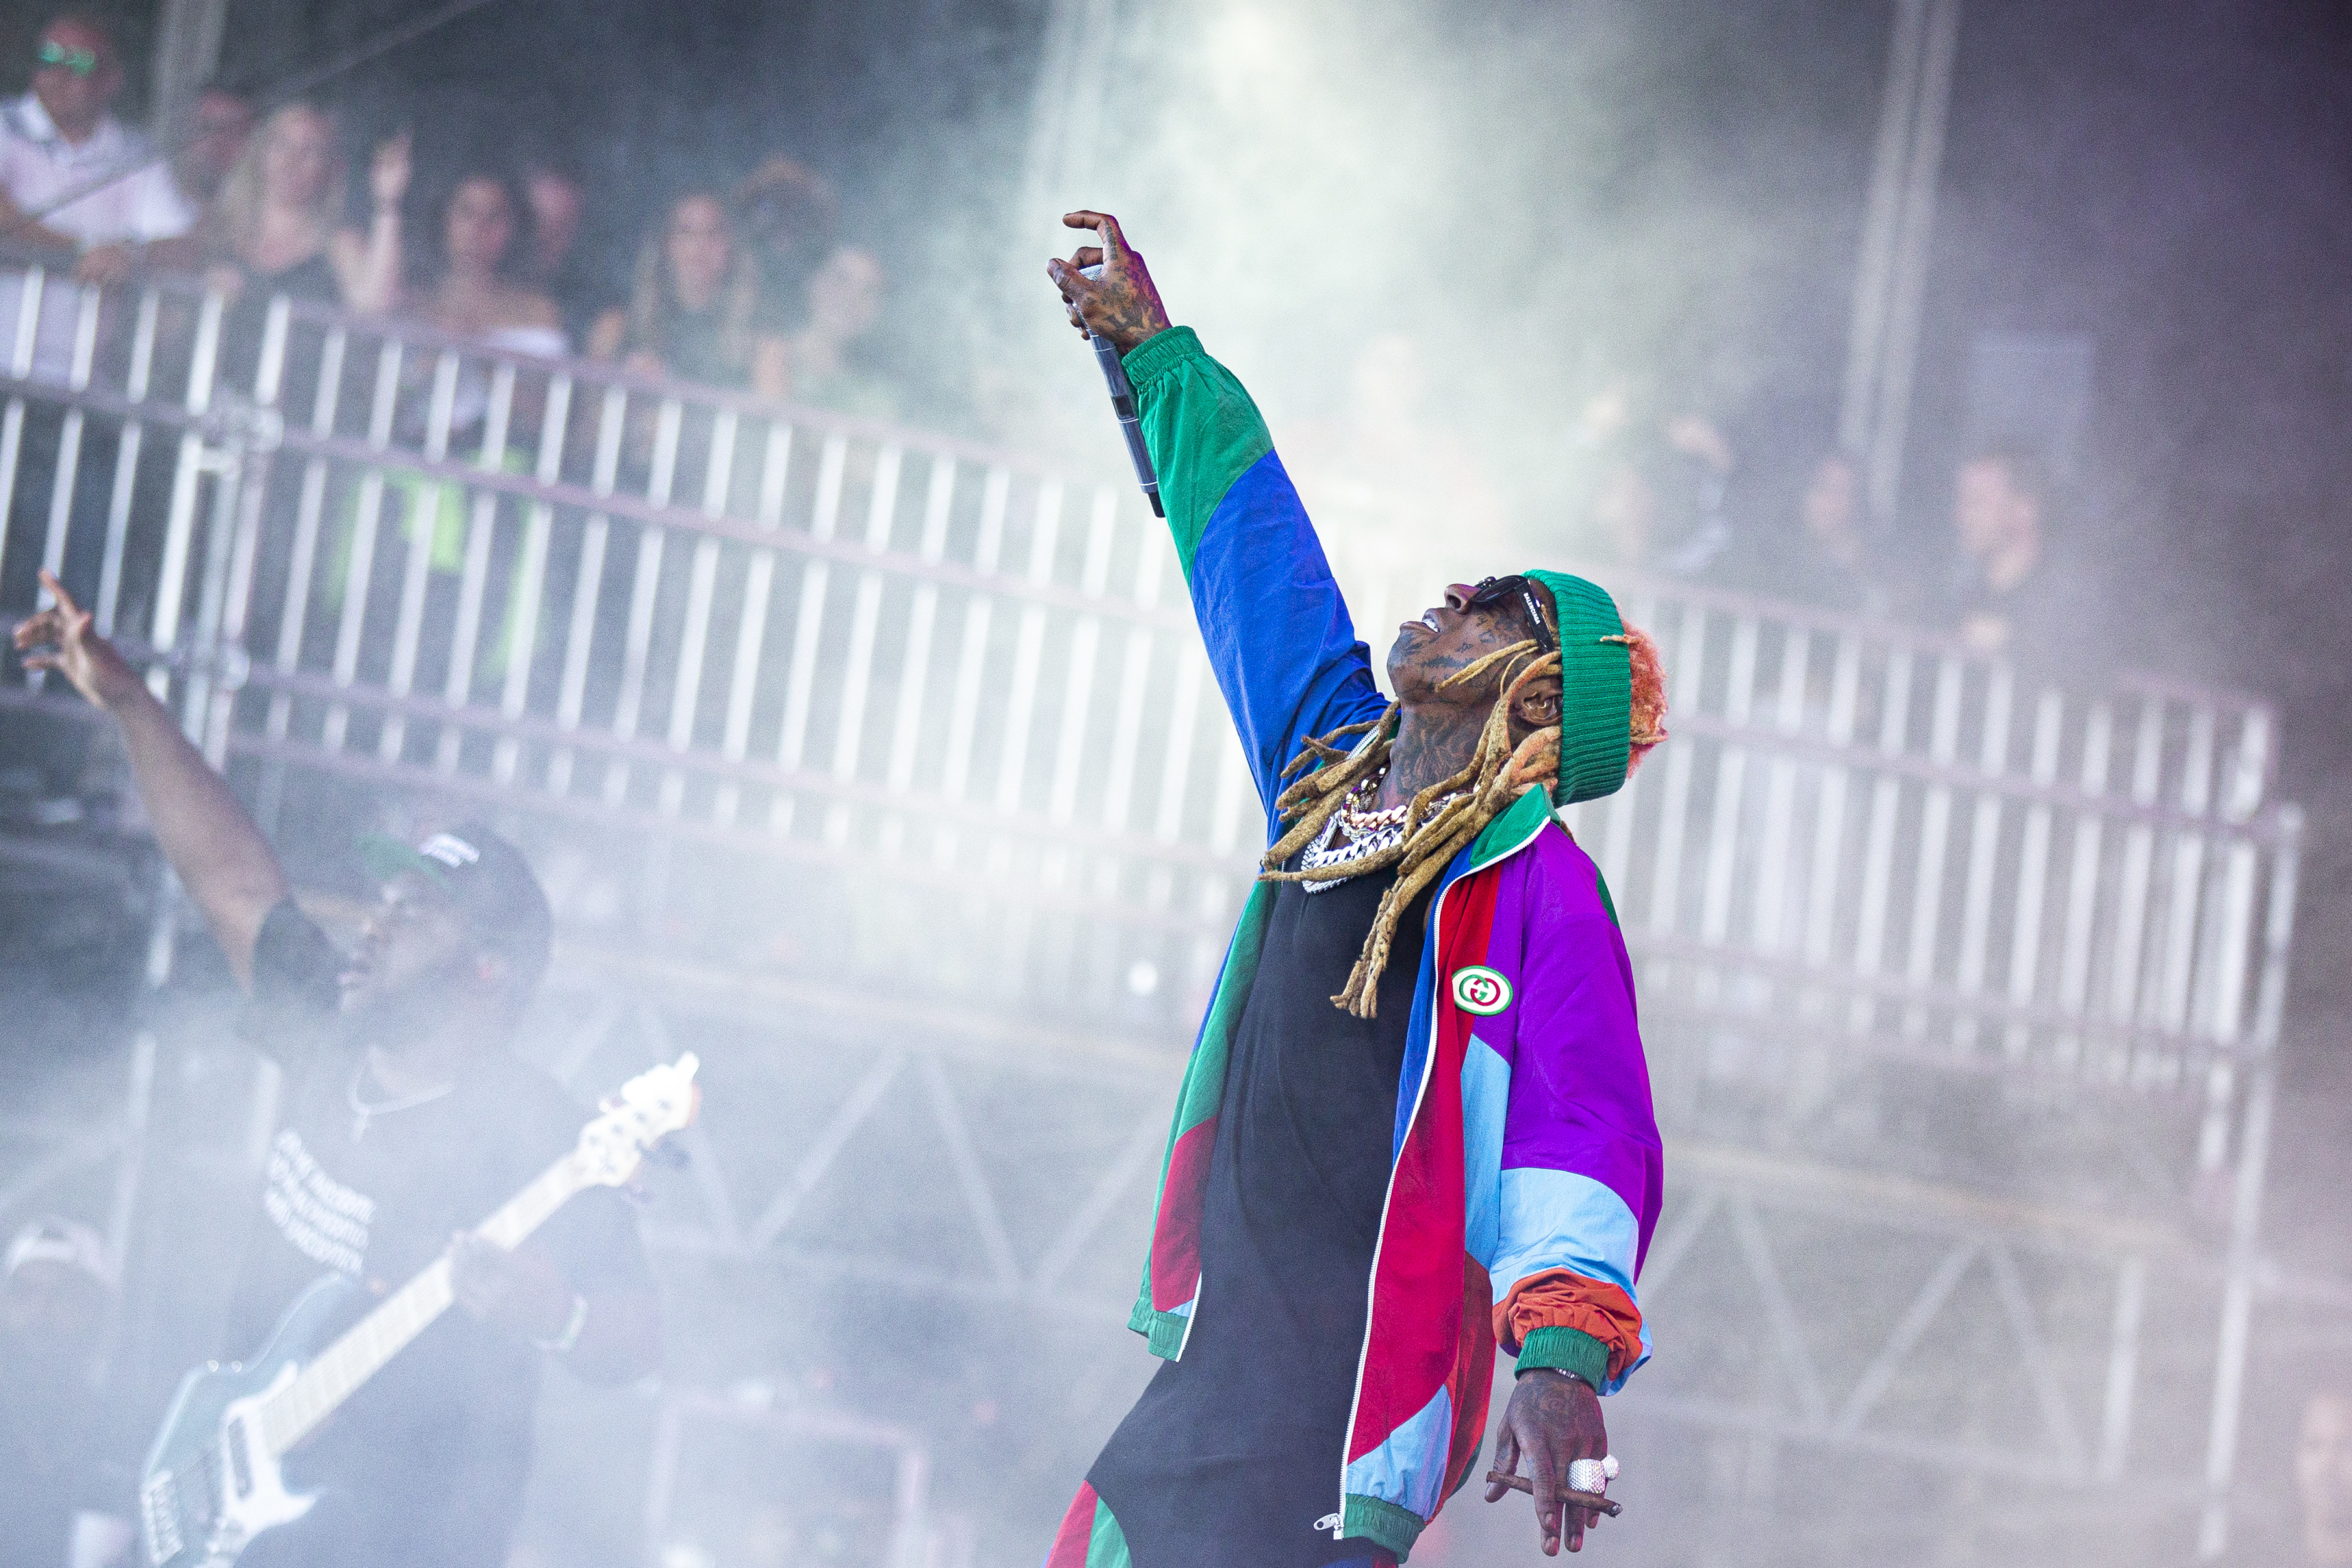 Lil Wayne's set at Outside Lands tone-deaf amid high alert